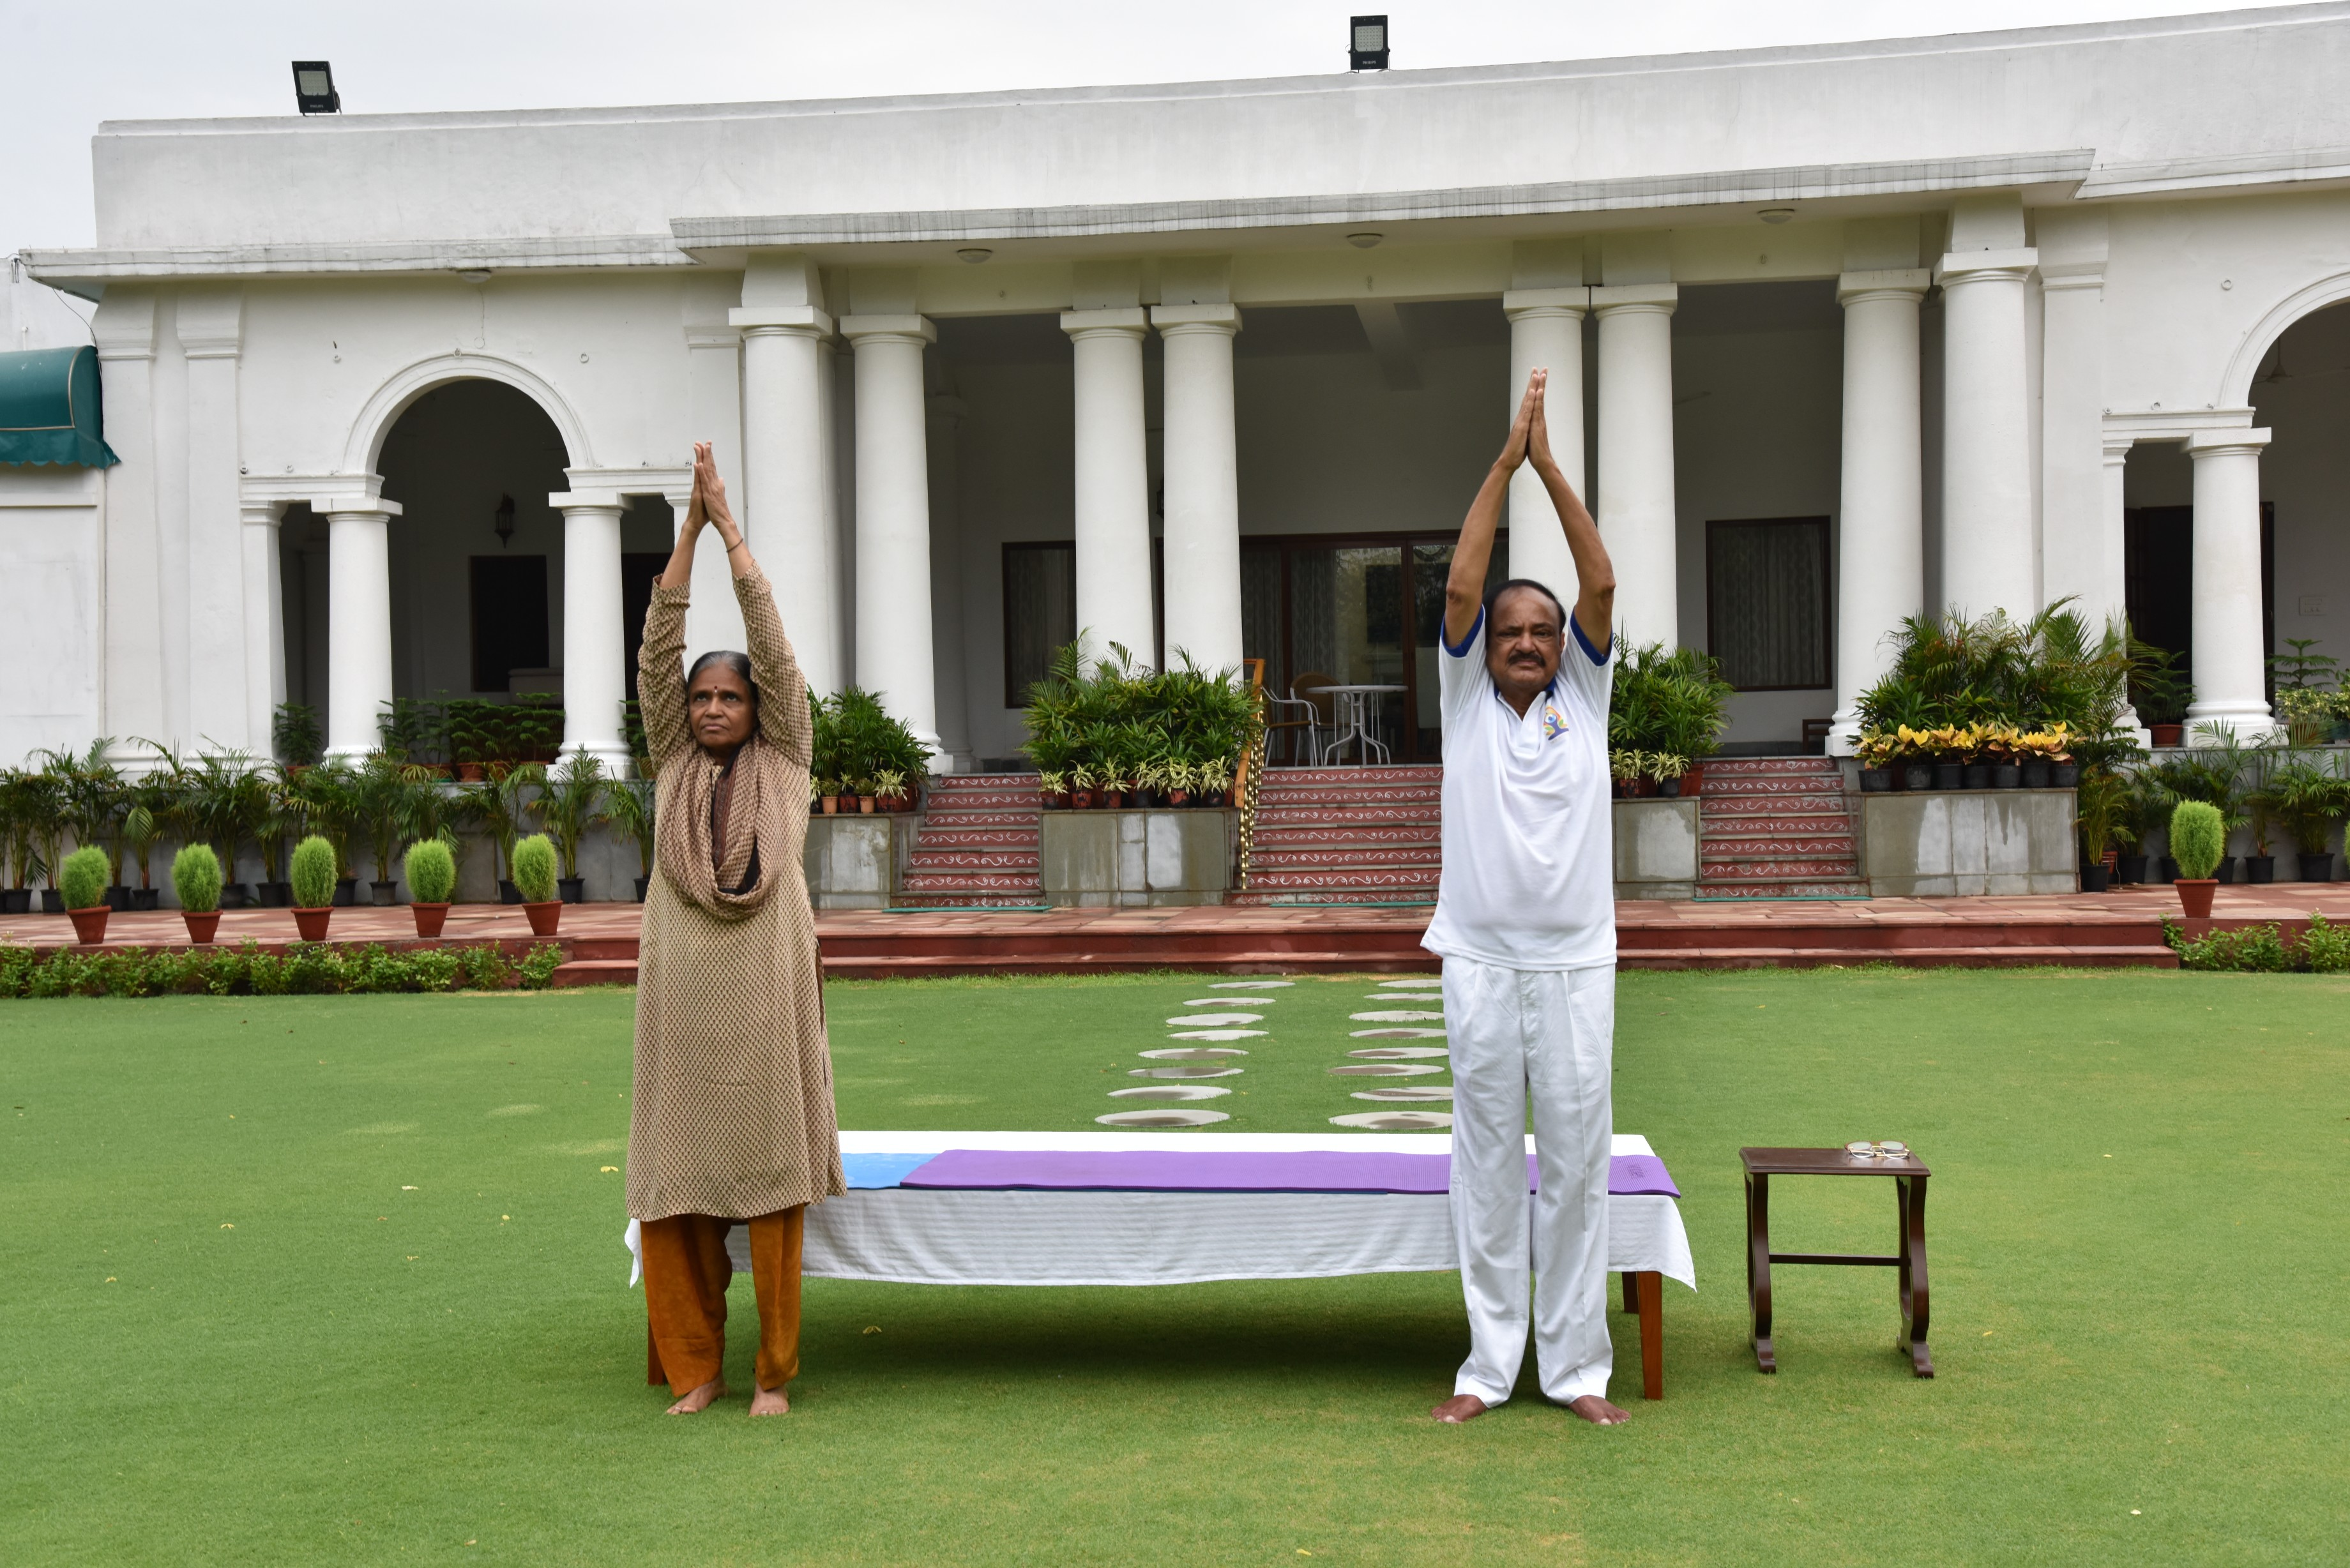 The Vice President of India, Shri M. Venkaiah Naidu and his wife Smt. Ushamma performing Yoga, on the occasion of International Day of Yoga, at Upa-Rashtrapati Bhawan, in New Delhi on 21 June, 2020.